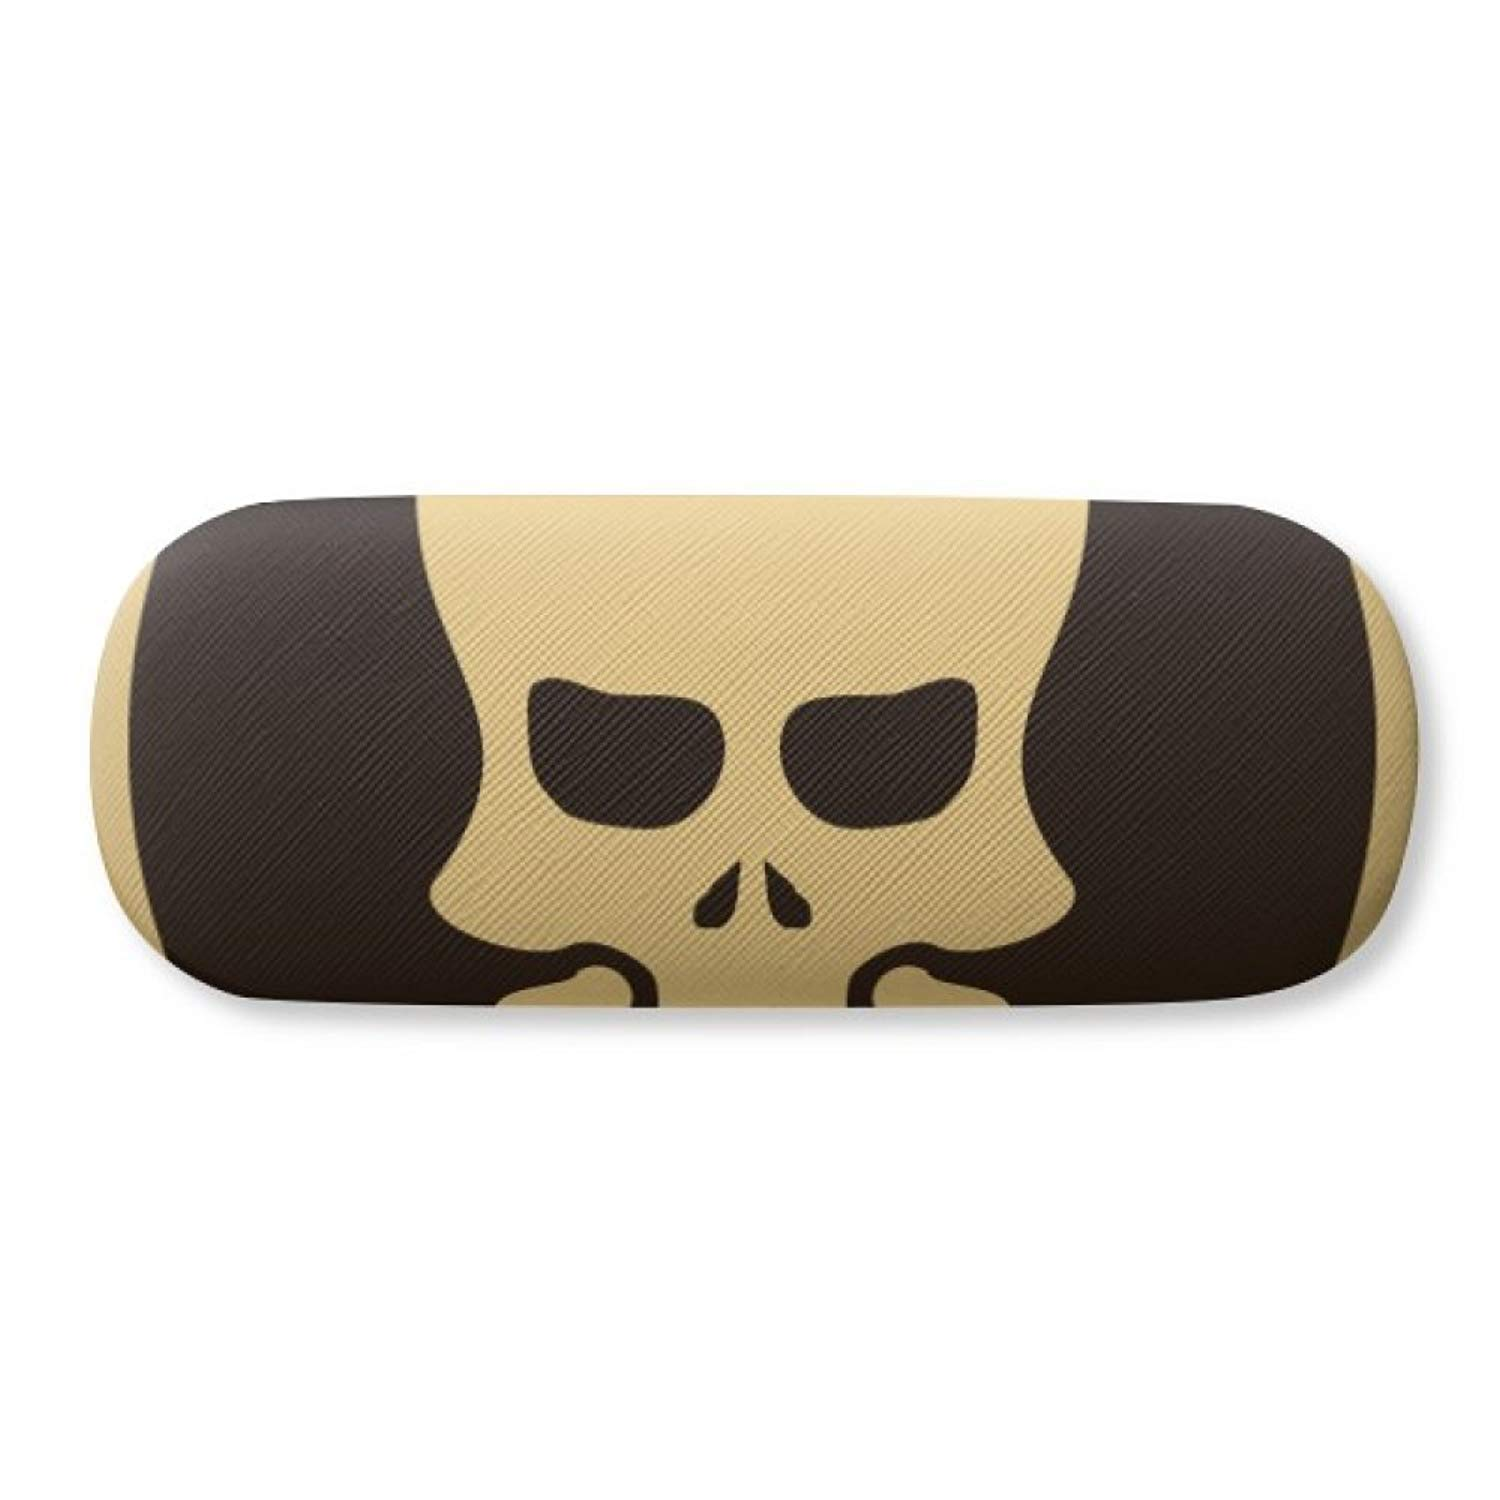 d4f9497a4032 Get Quotations · Happy Halloween Hollowed Skull Glasses Case Eyeglasses  Clam Shell Holder Storage Box